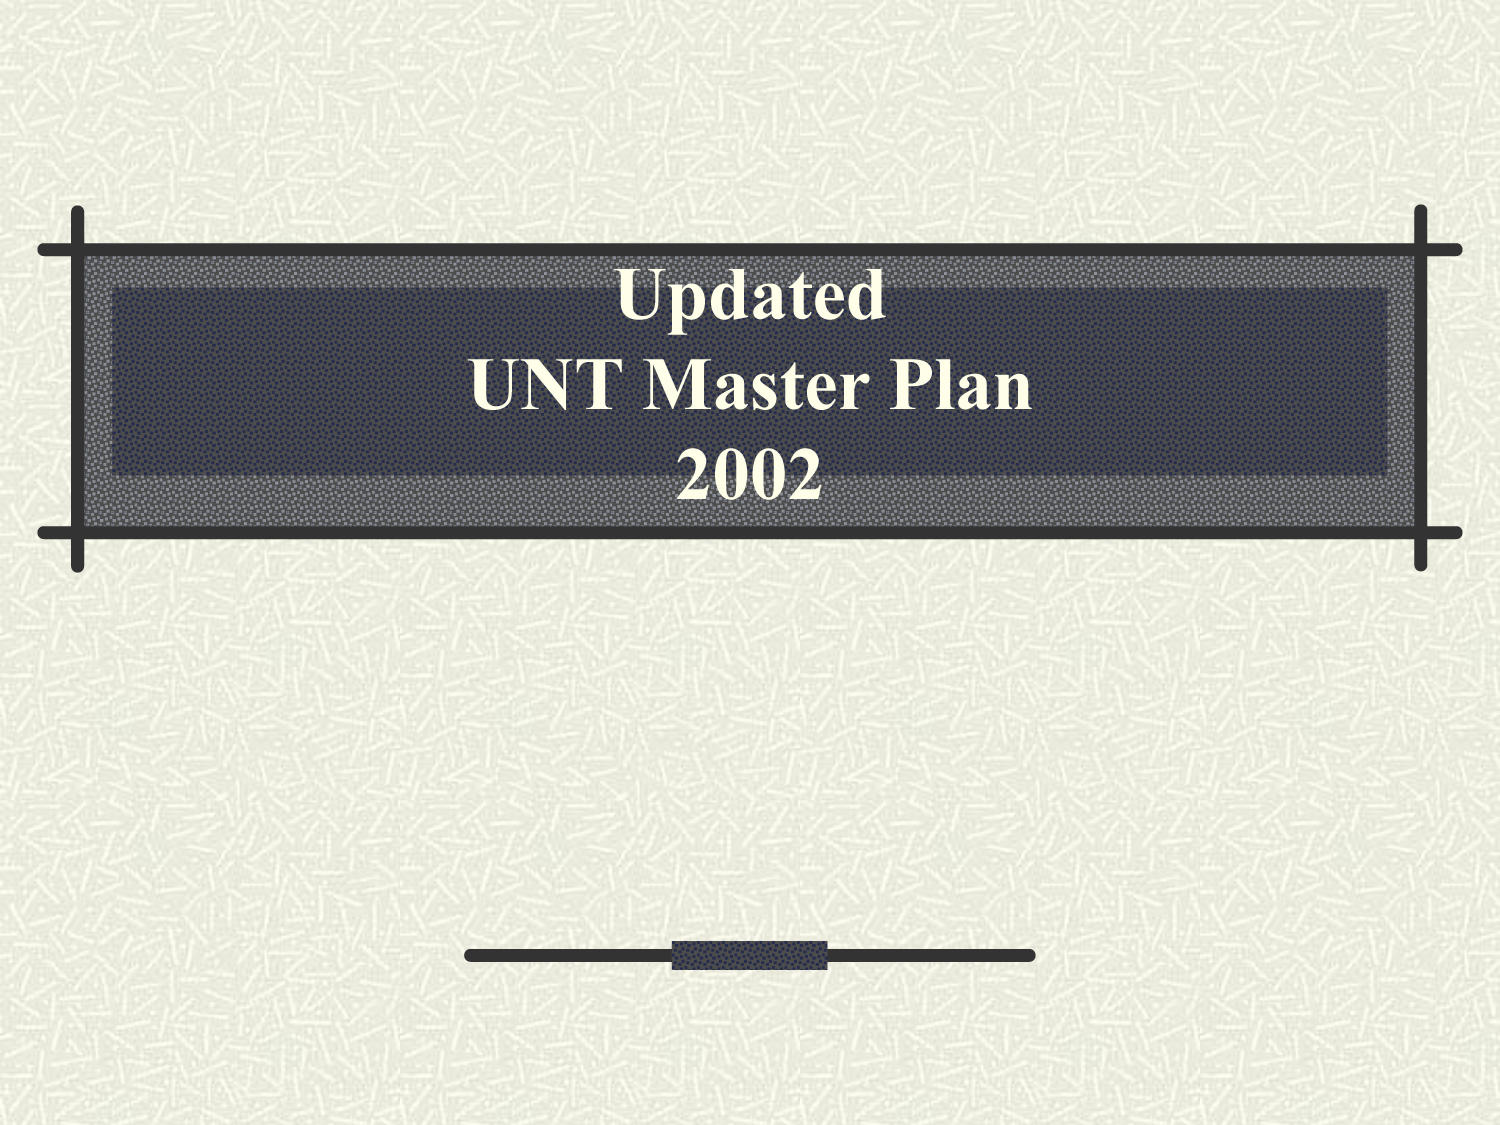 Updated UNT Master Plan, PowerPoint presentation detailing UNTs Master Plan as of August 22, 2002. It includes an overview of completed an in-progress developments, including eleven property acquisitions during the year, and ongoing future plans.,